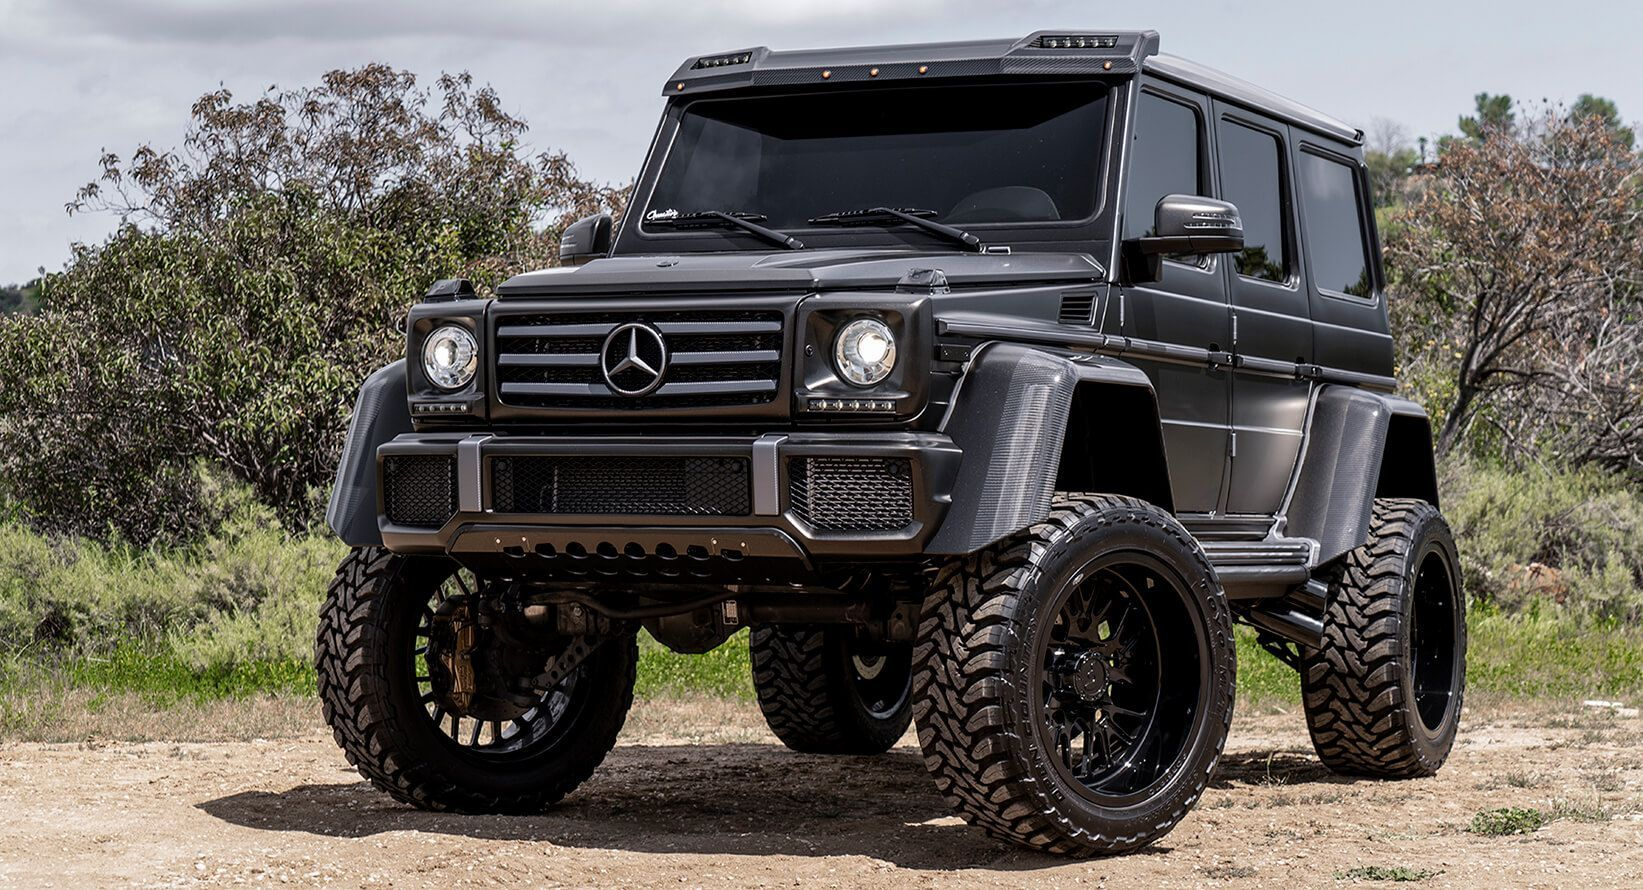 Mercedes Benz G500 4 4 Laughs In The Face Of The New Model Mercedes Benz G500 Mercedes Mercedes Benz